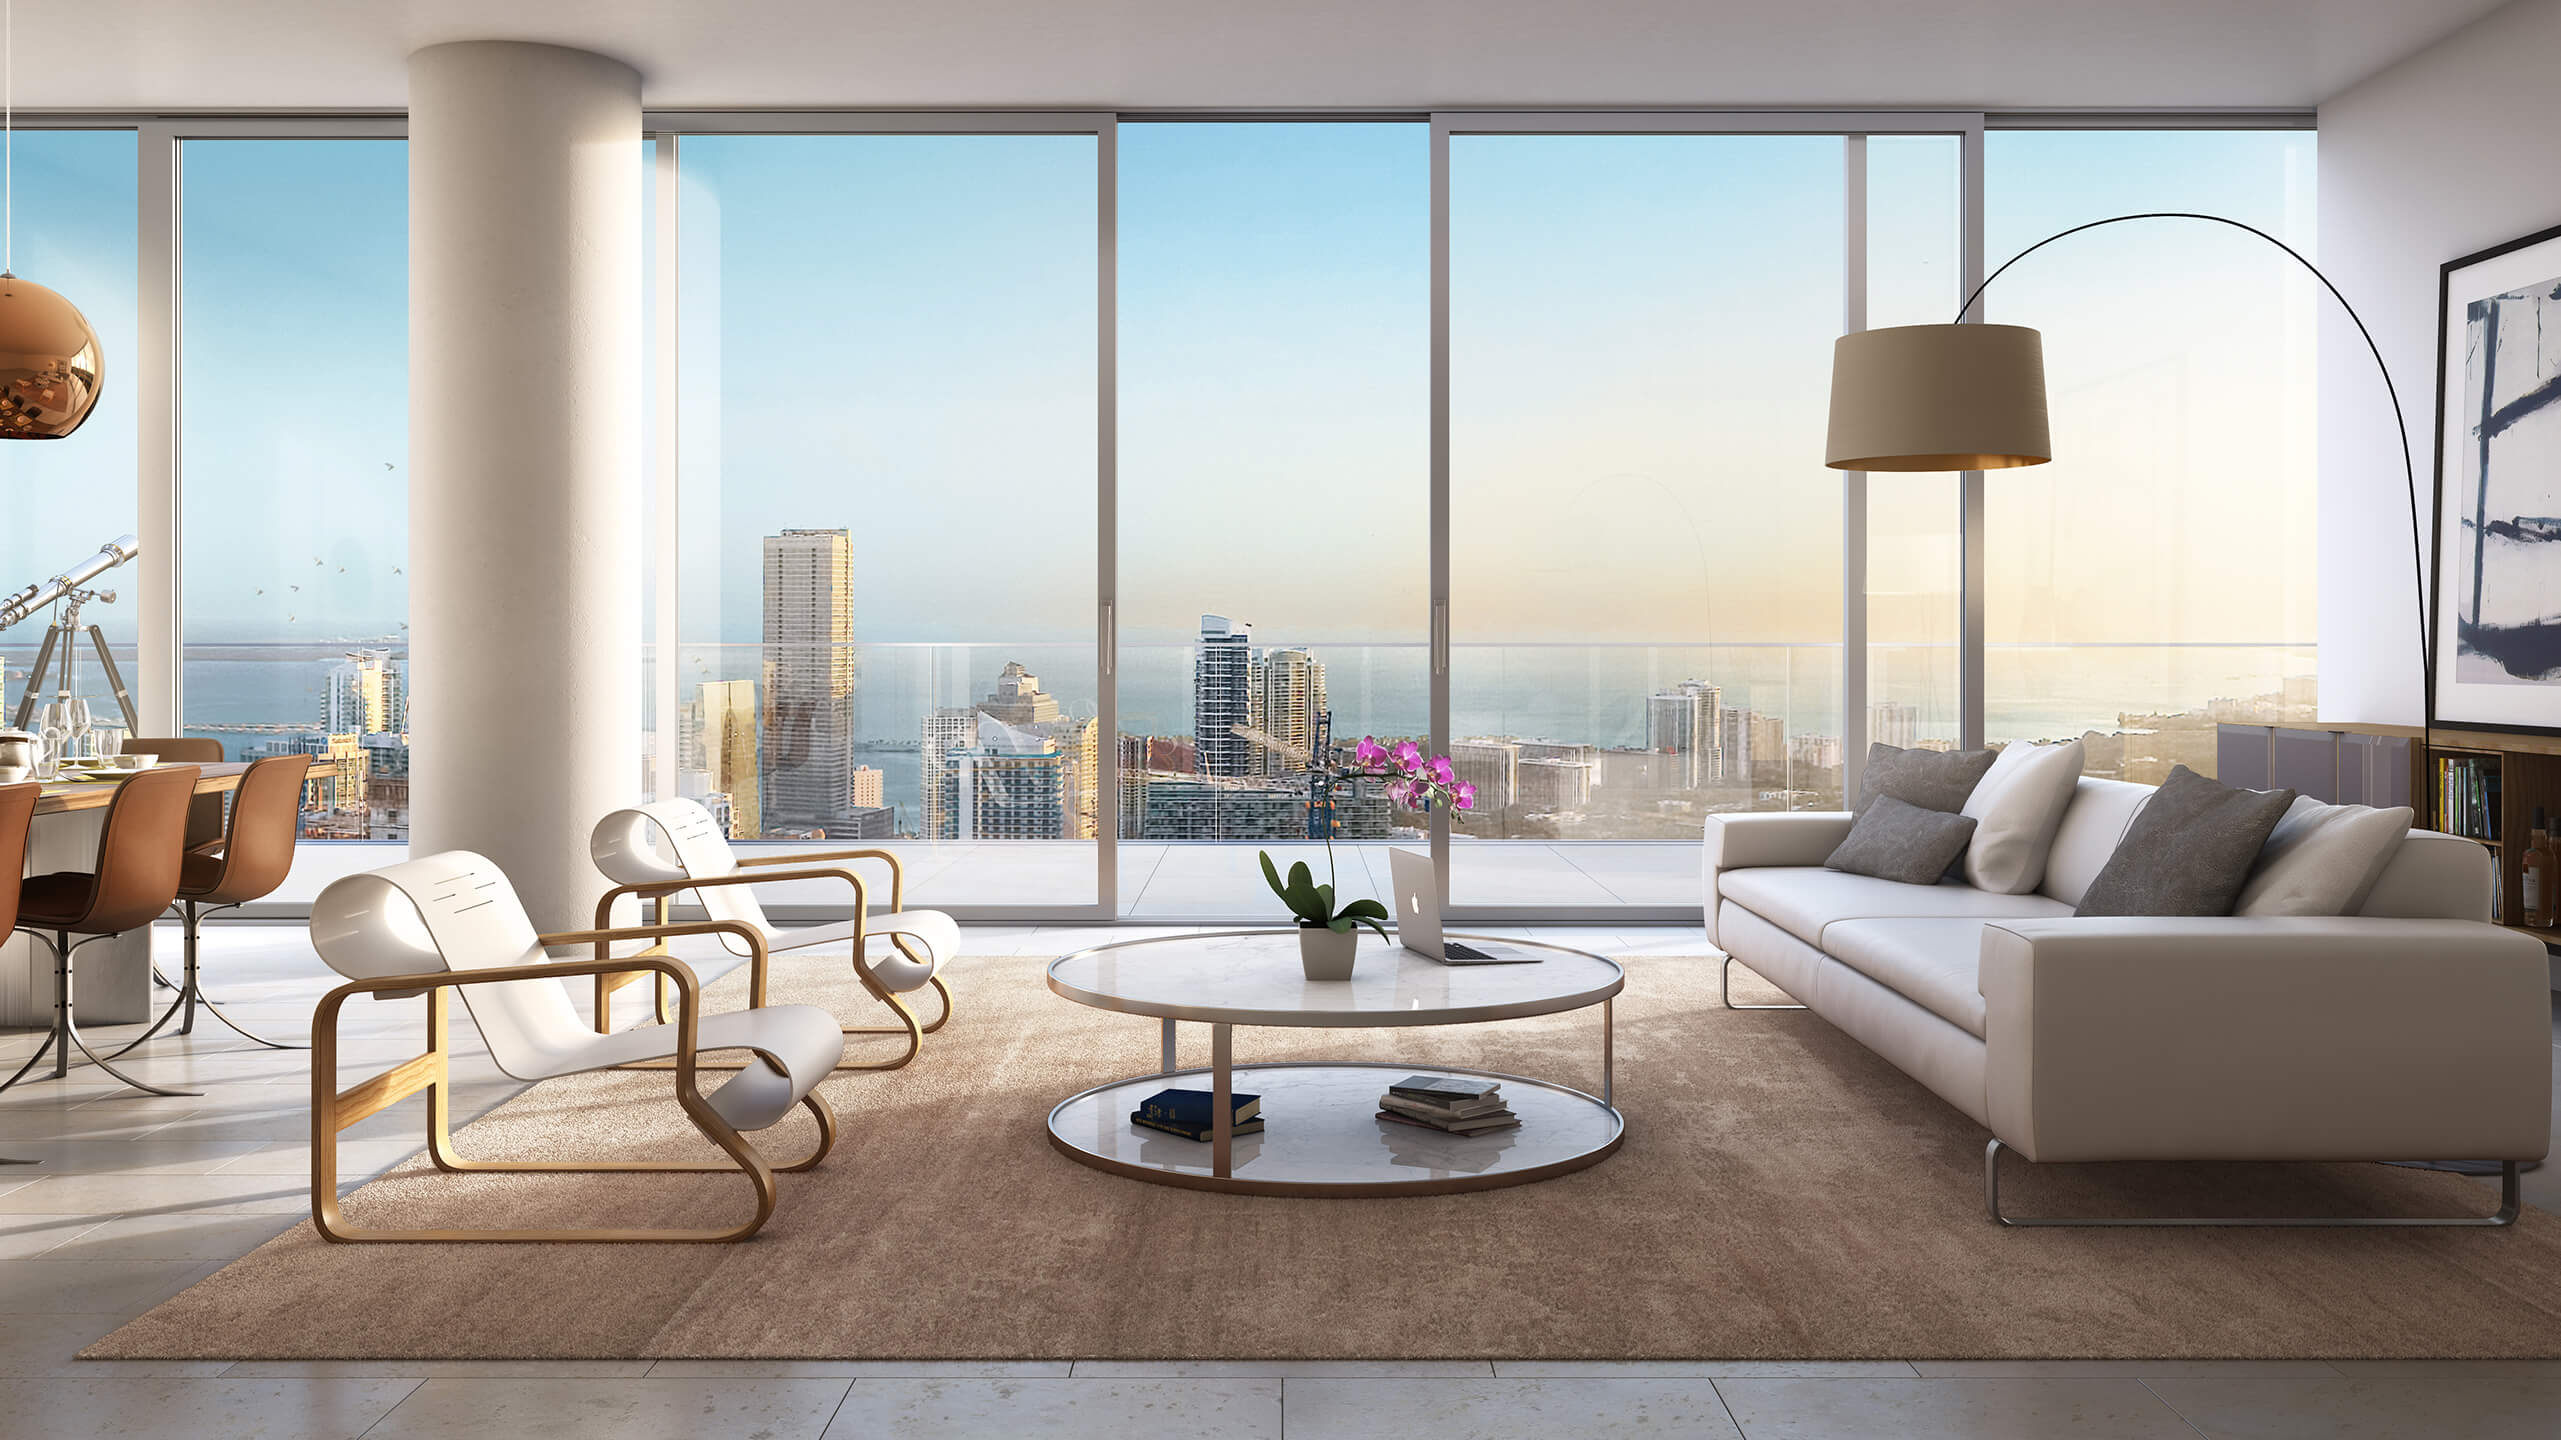 Visualhouse-Riverfront-Apt-Interior-Looking-Out